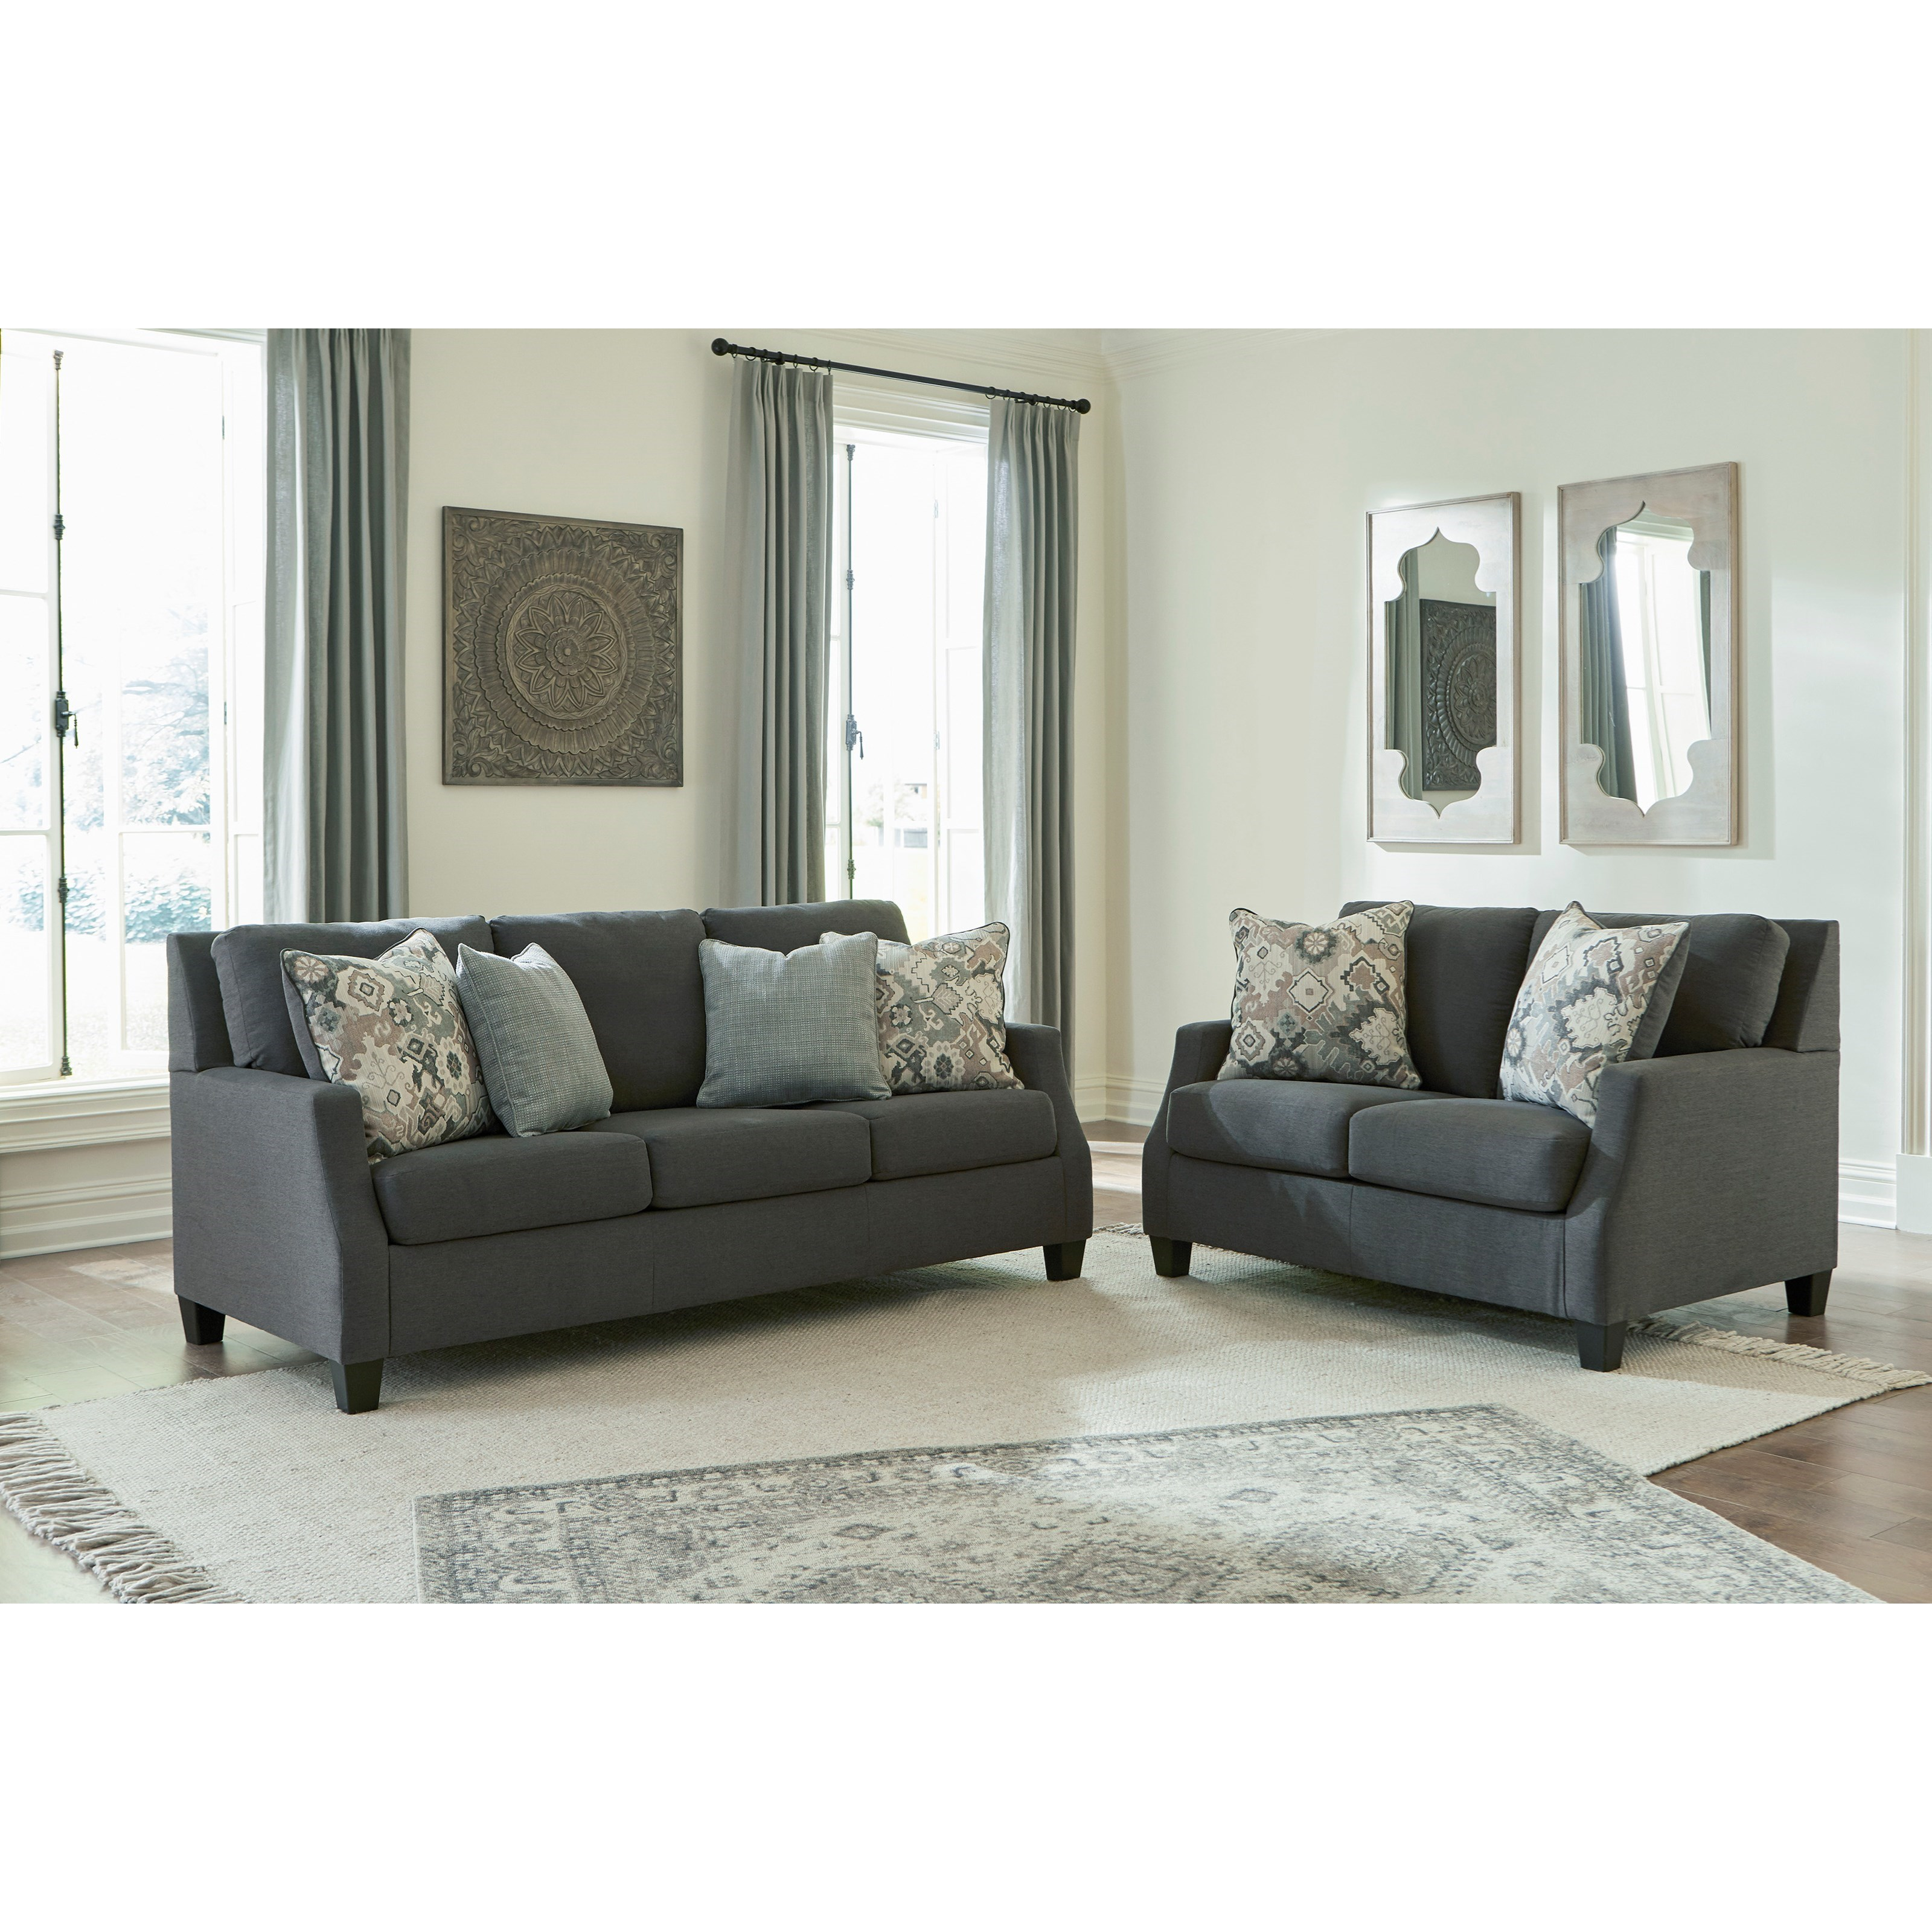 Bayonne Living Room Group at Sadler's Home Furnishings